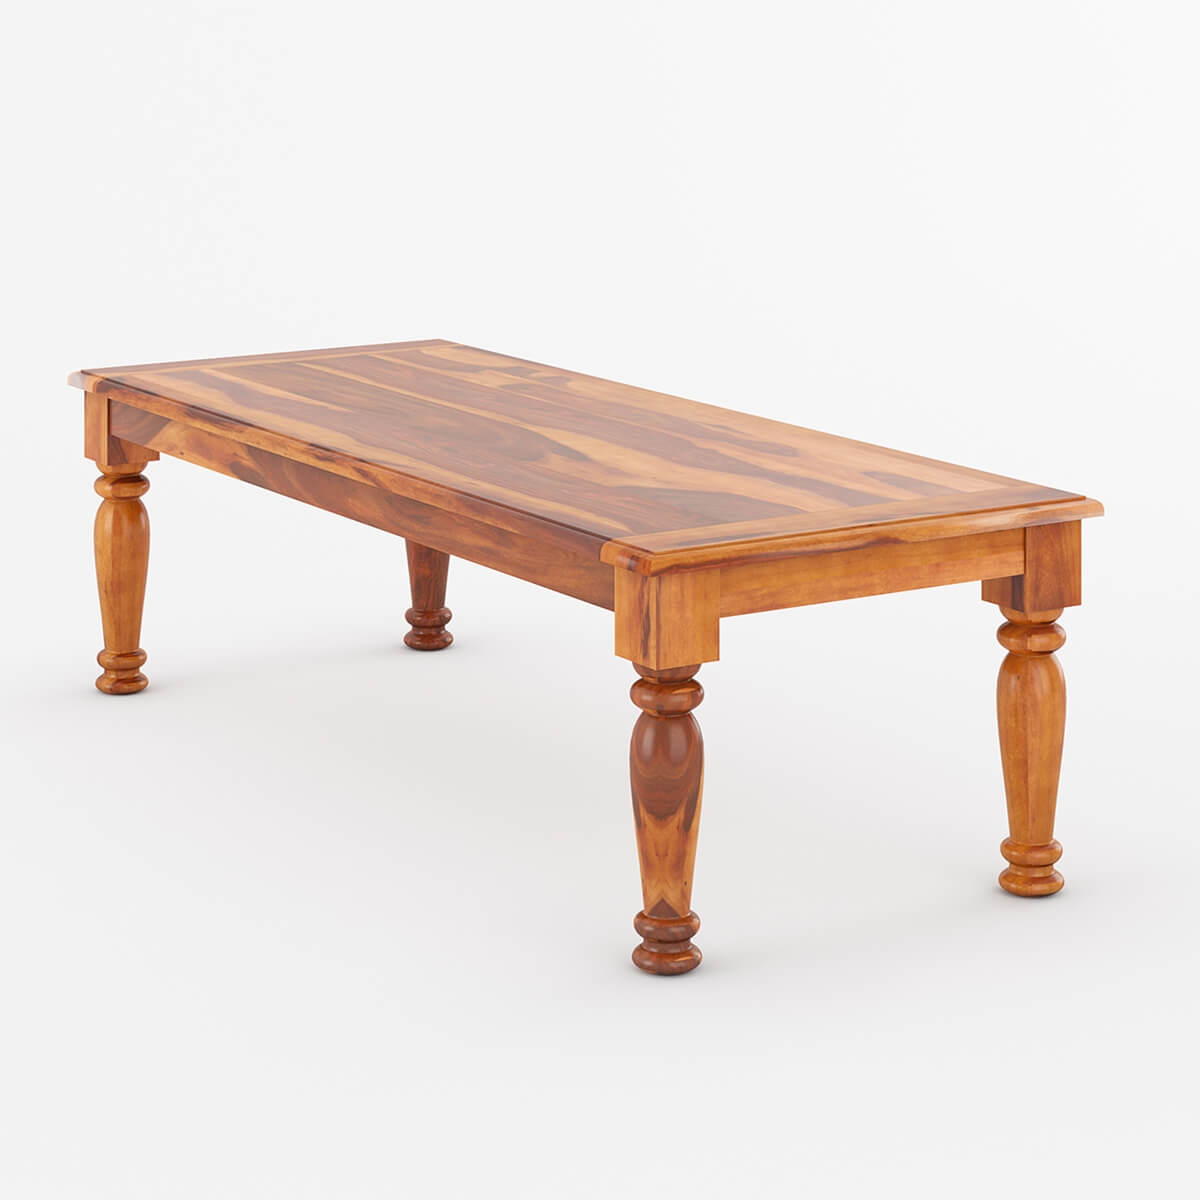 130 rustic solid wood rectangular large dining room table